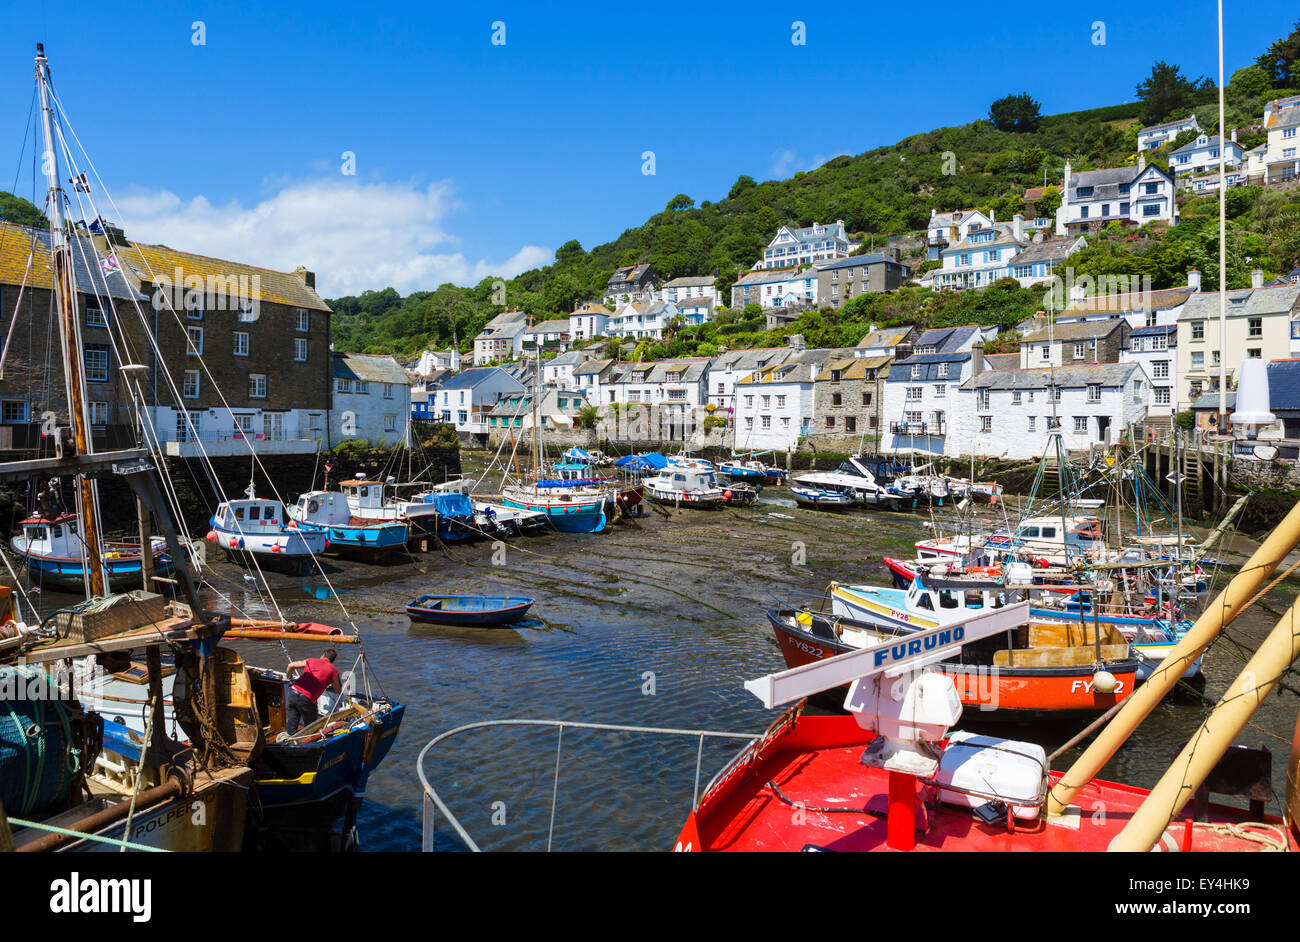 The harbour at low tide in the fishing village of Polperro, Cornwall, England, UK - Stock Image